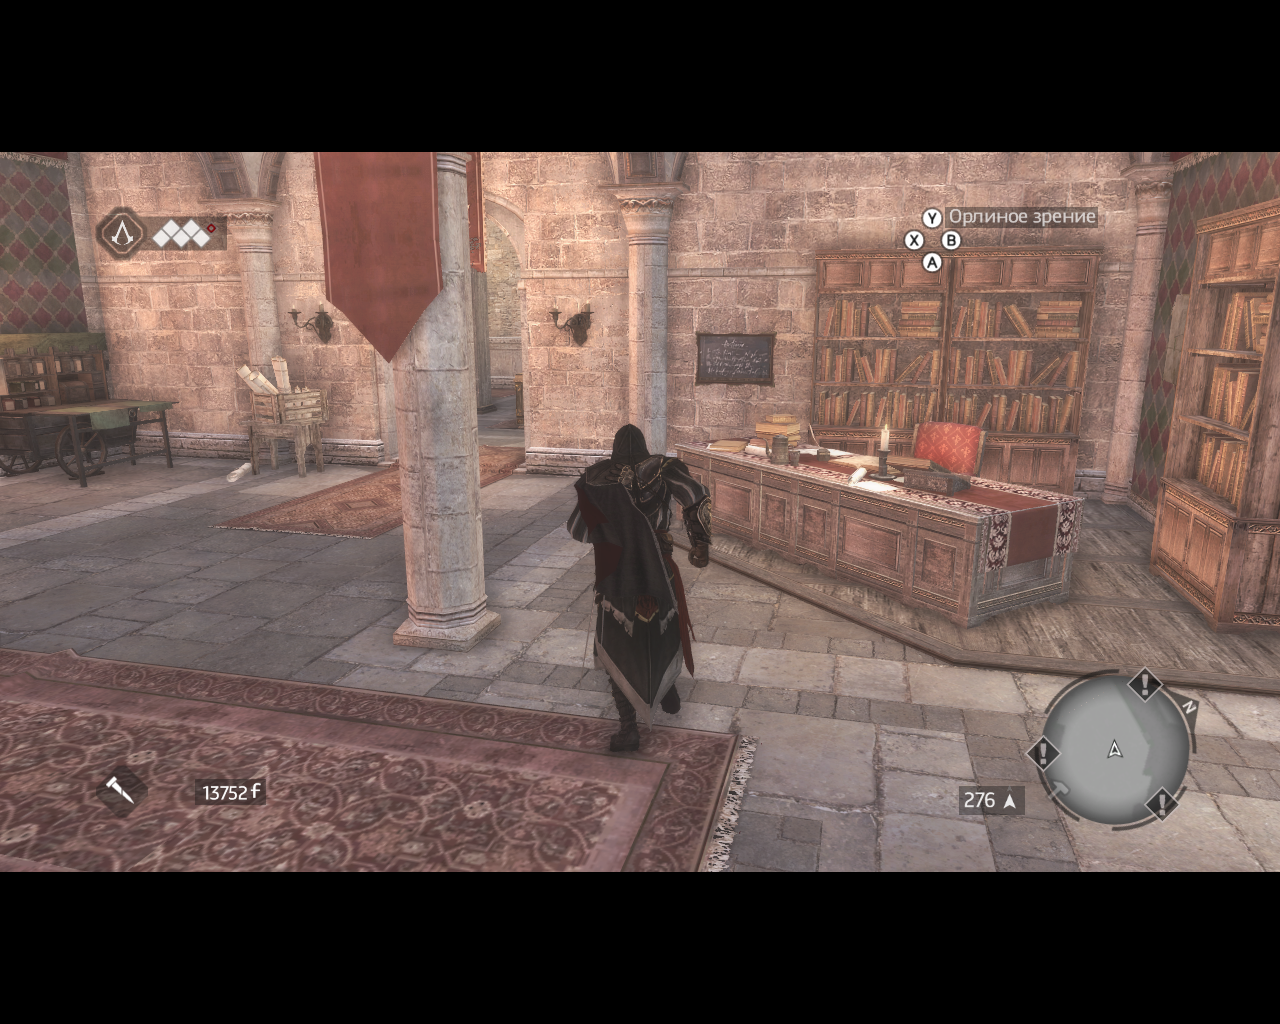 Assassin's Creed: Brotherhood Windows Ezio's new hideout